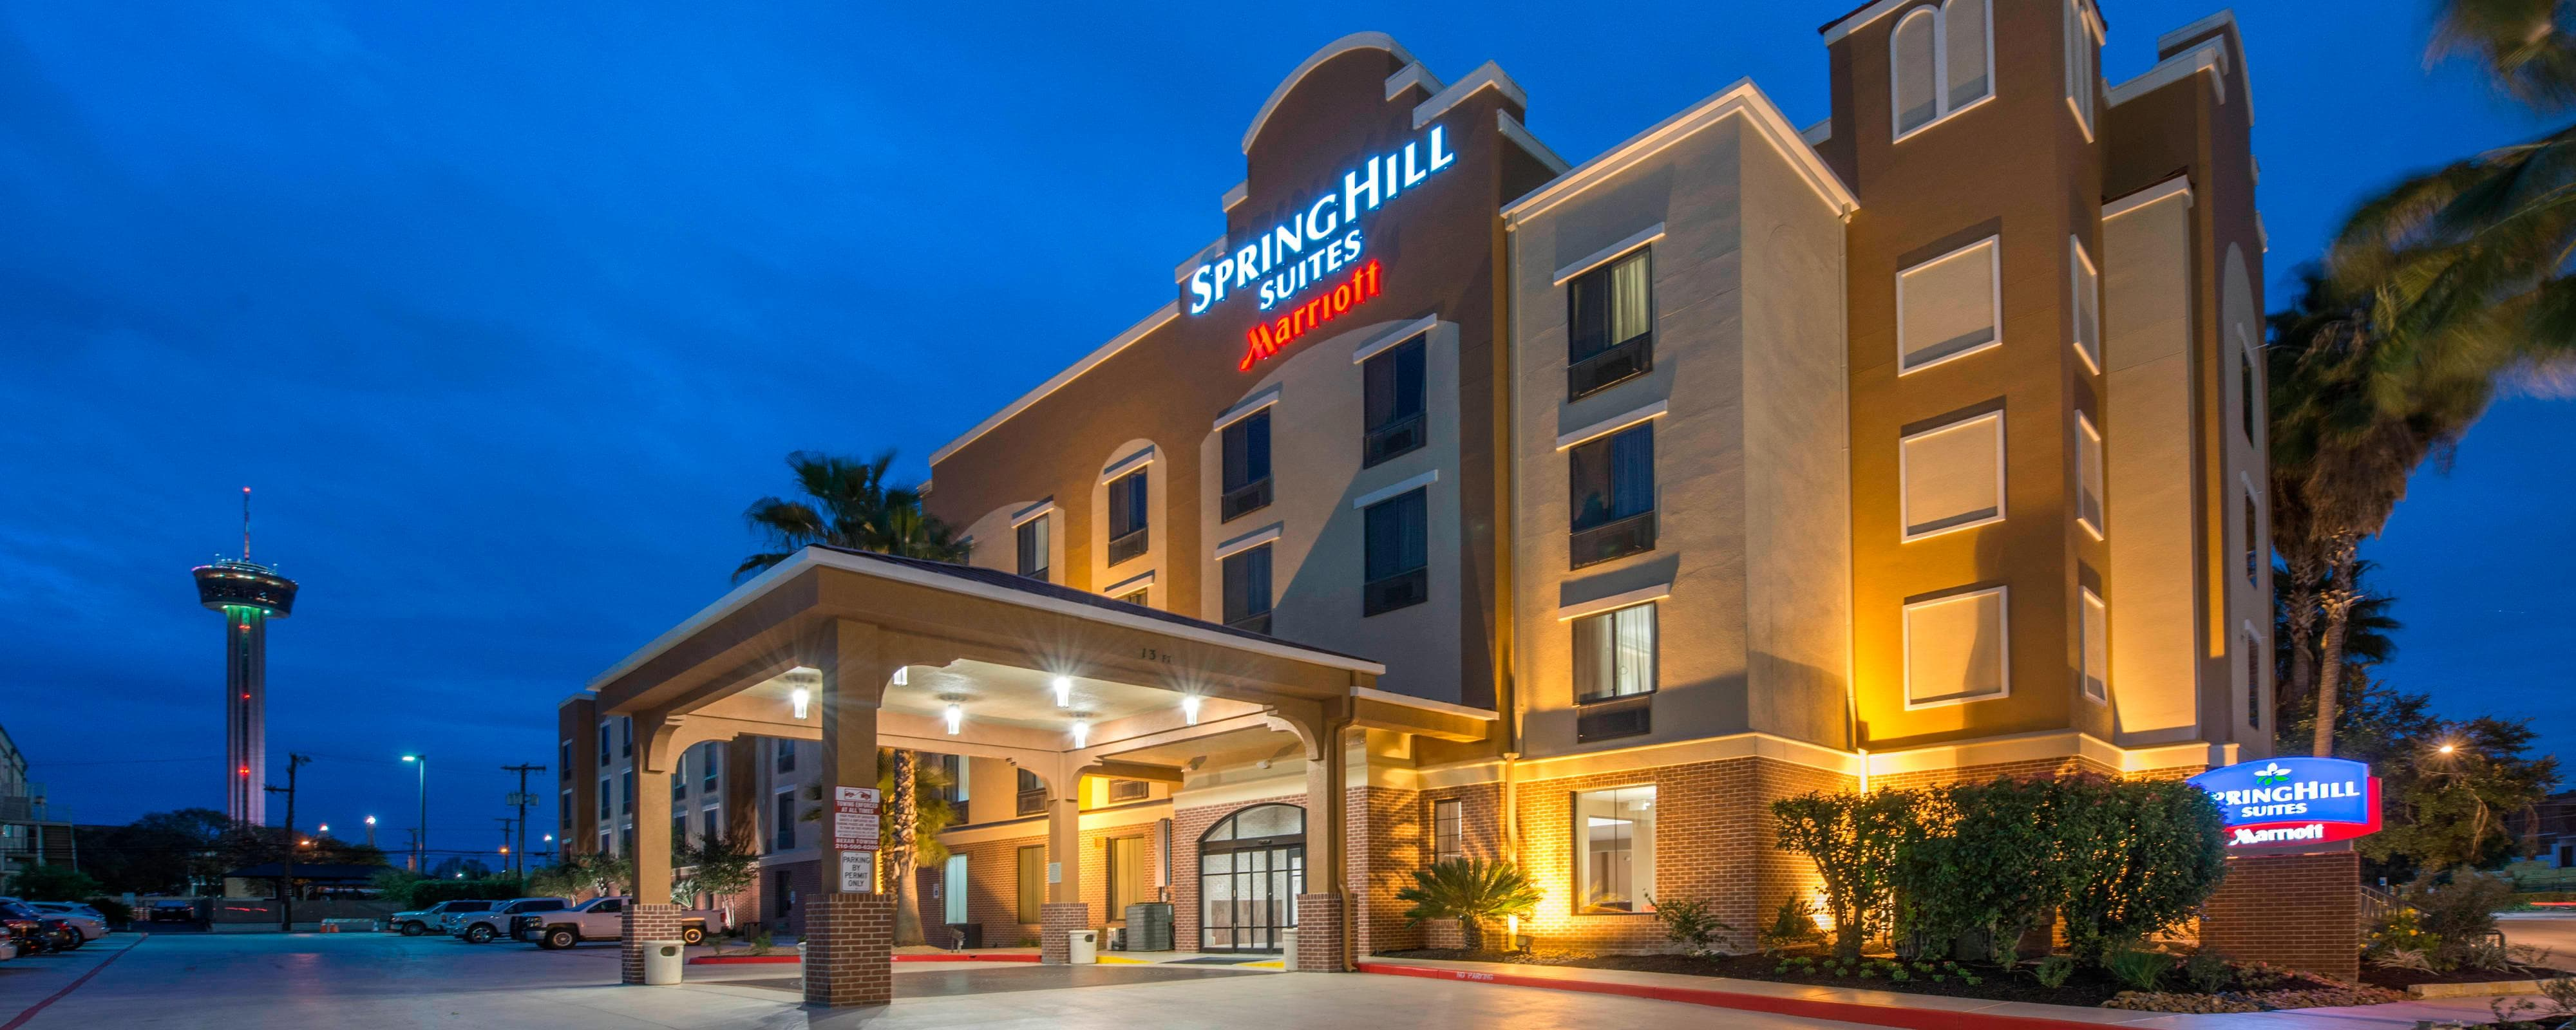 How to Get to SpringHill Suites San Antonio Downtown